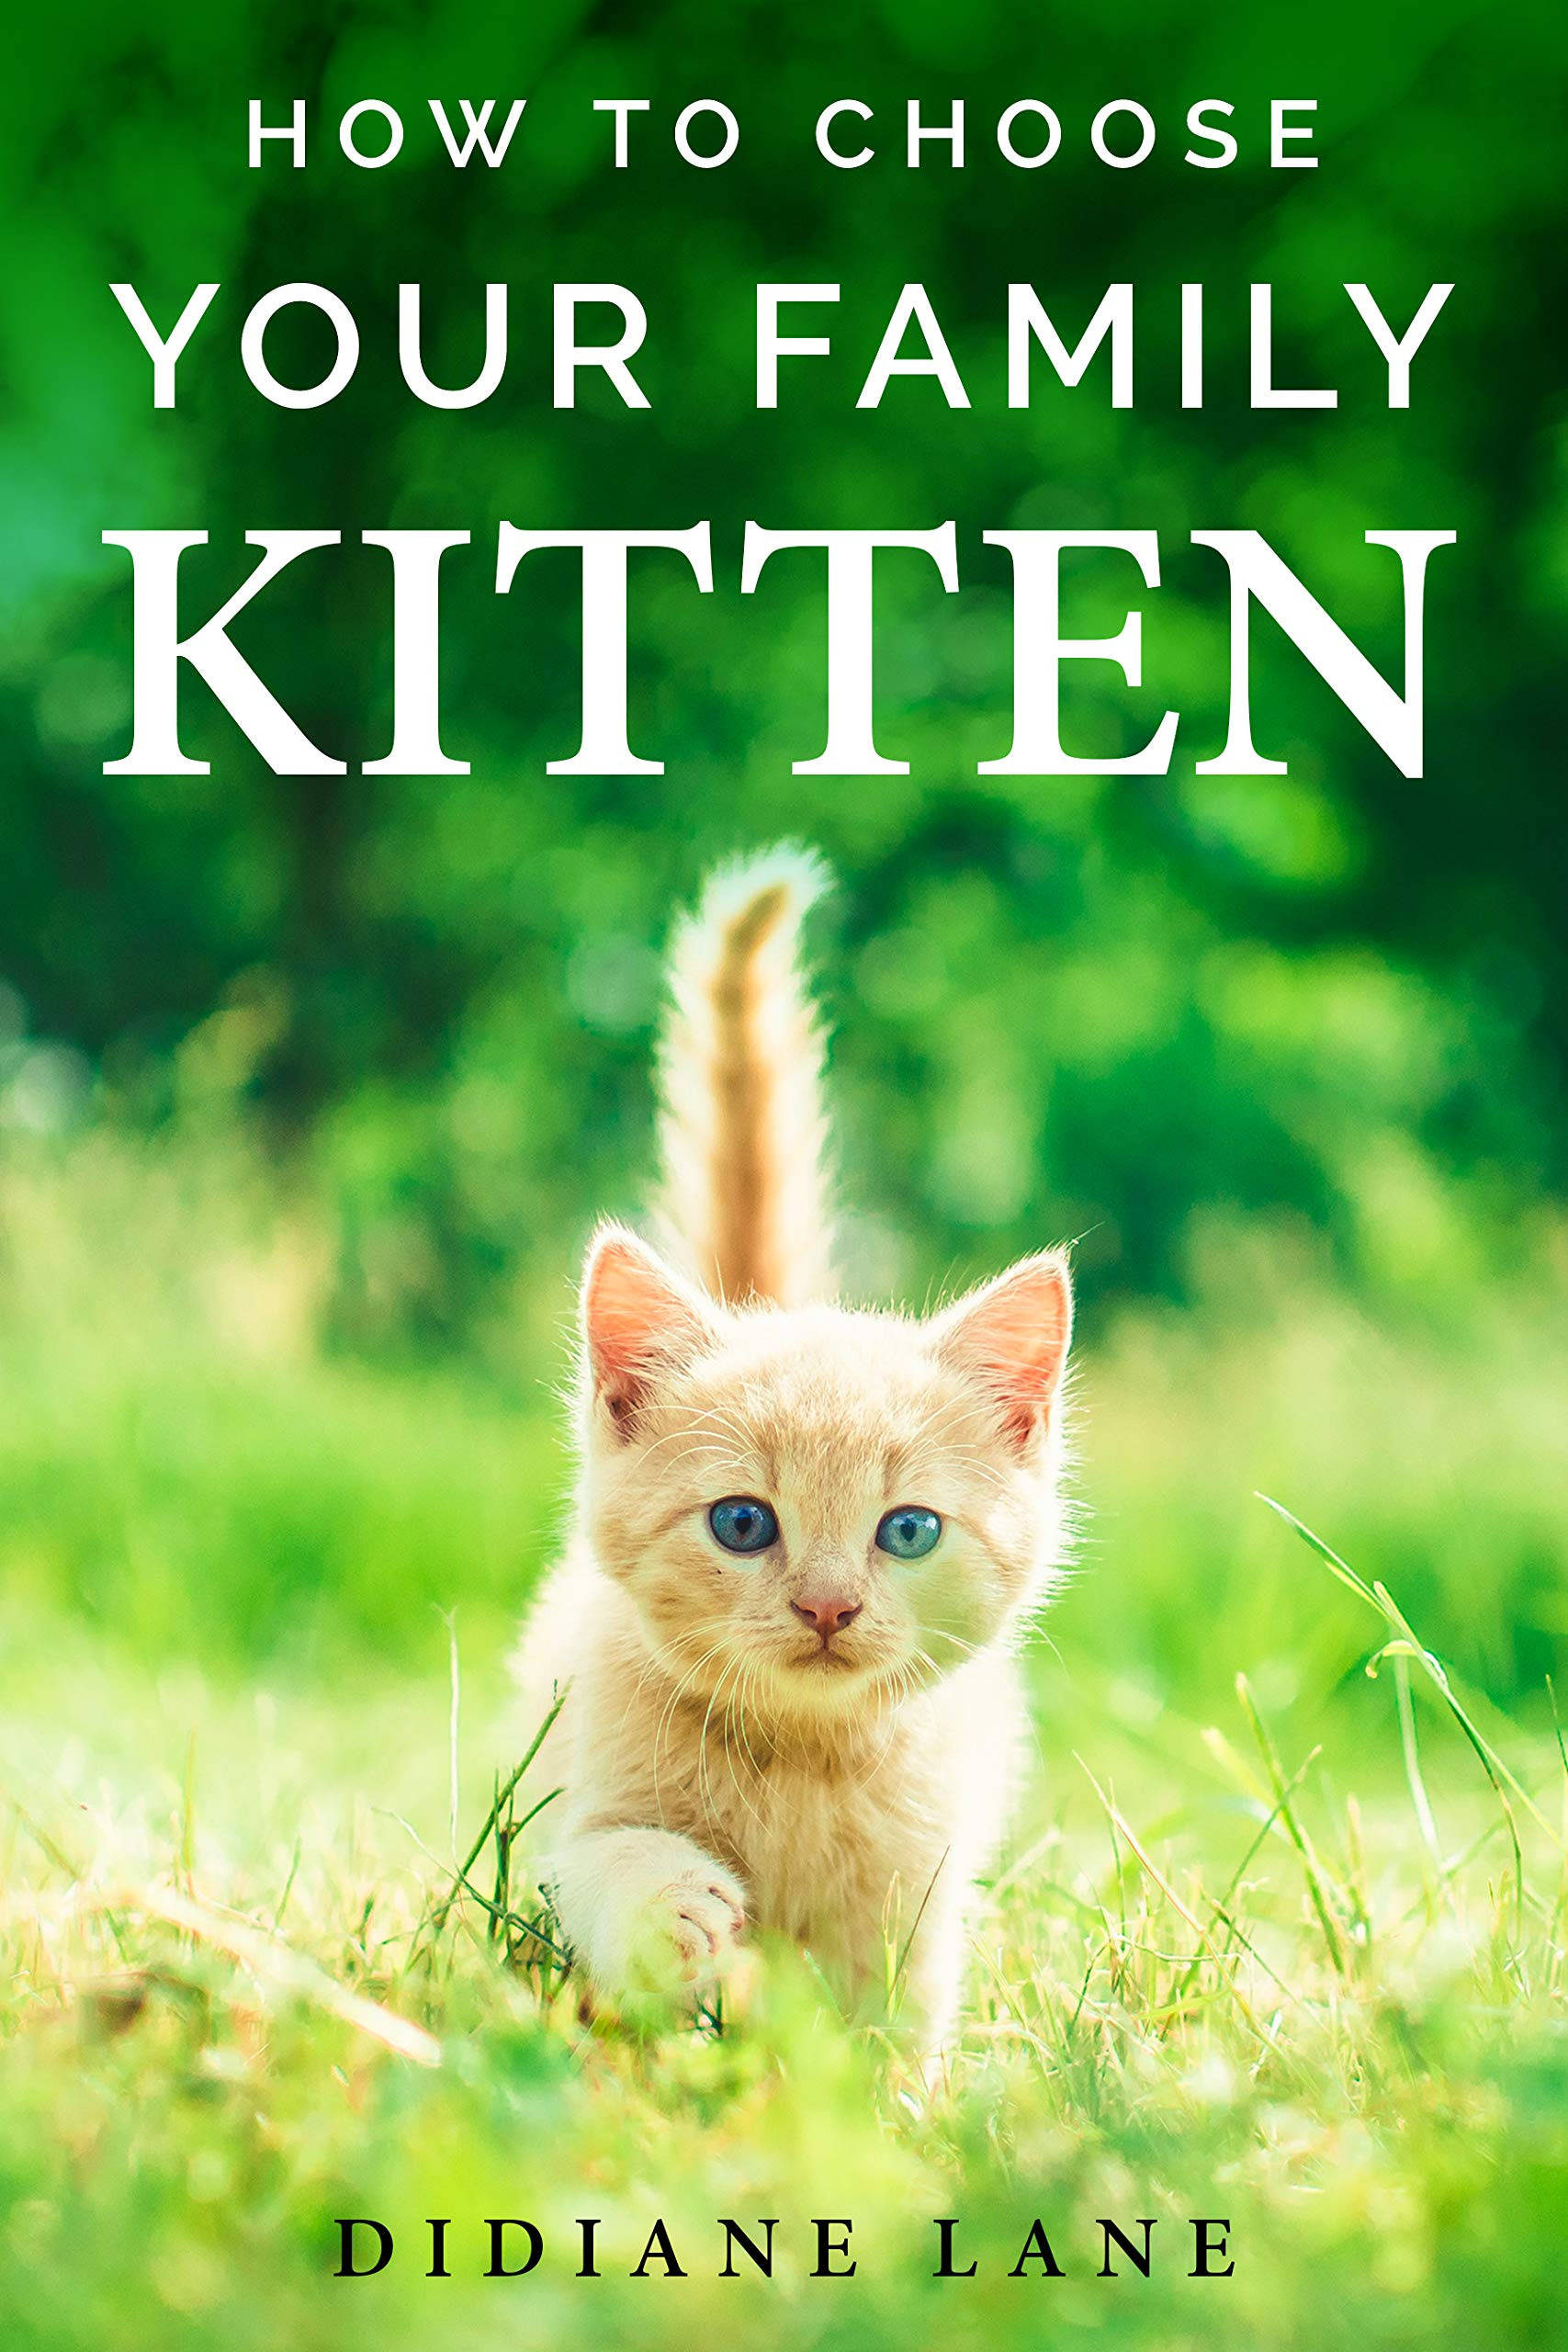 How to Choose Your Family Kitten: The Art of Raising a Kitten, a Practical Guide to Make Them Part of the Family and Friendly with Children.